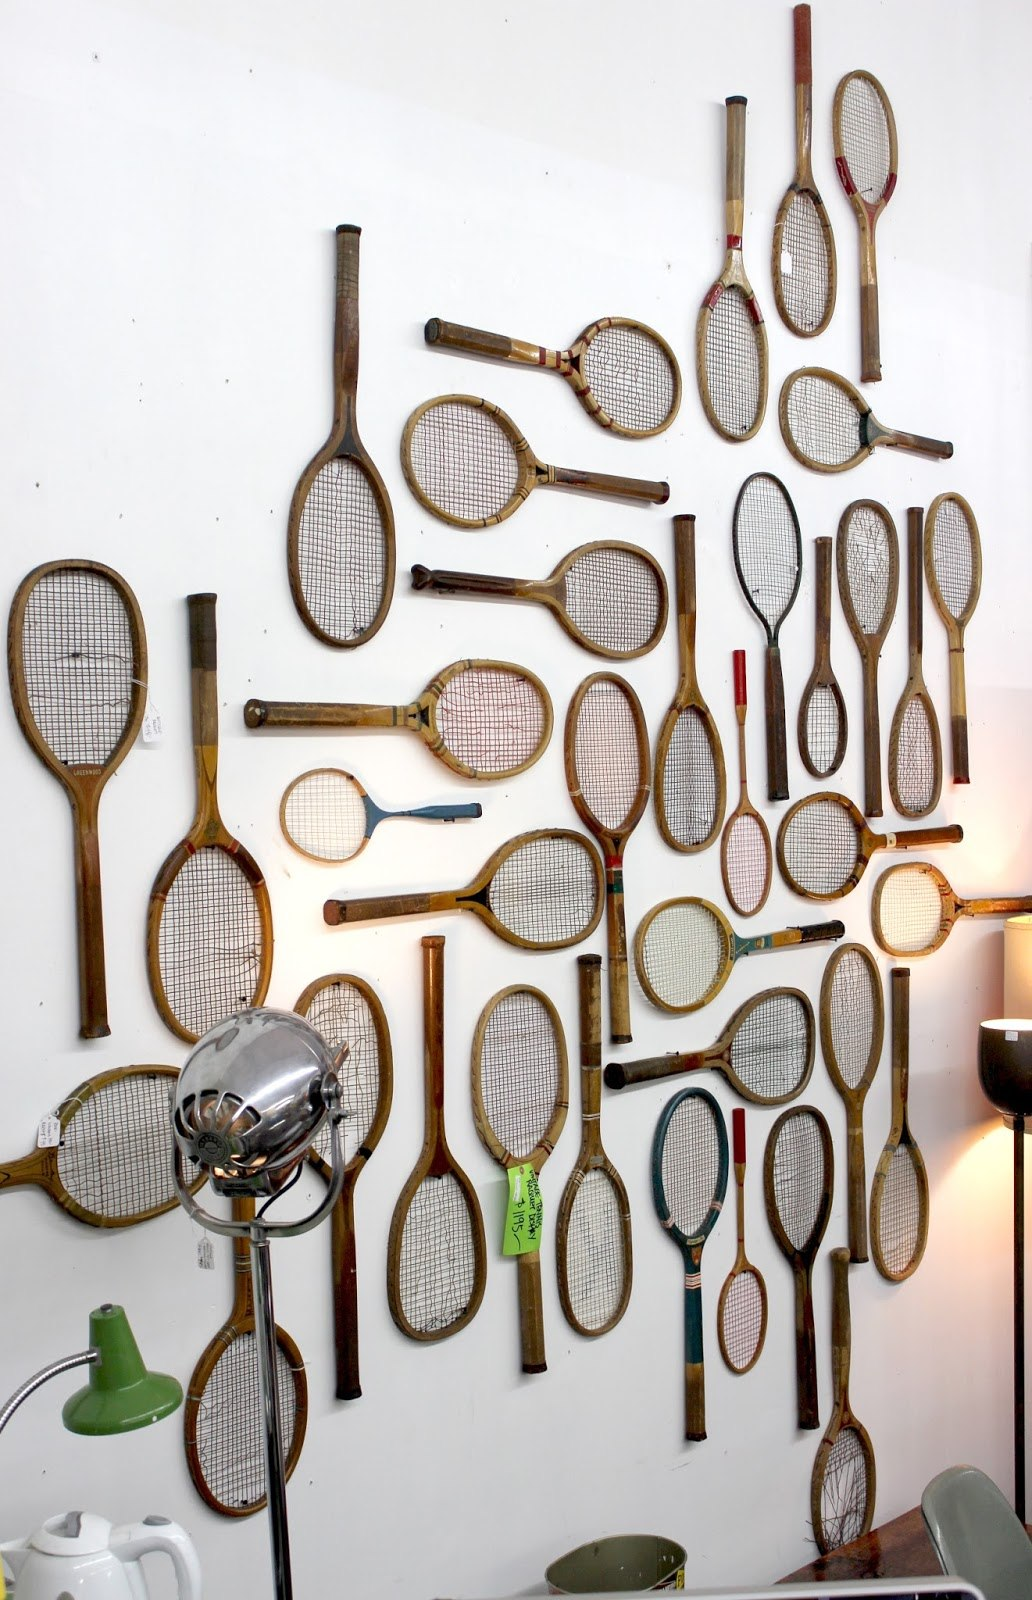 A selection of tennis rackets hung on a white wall